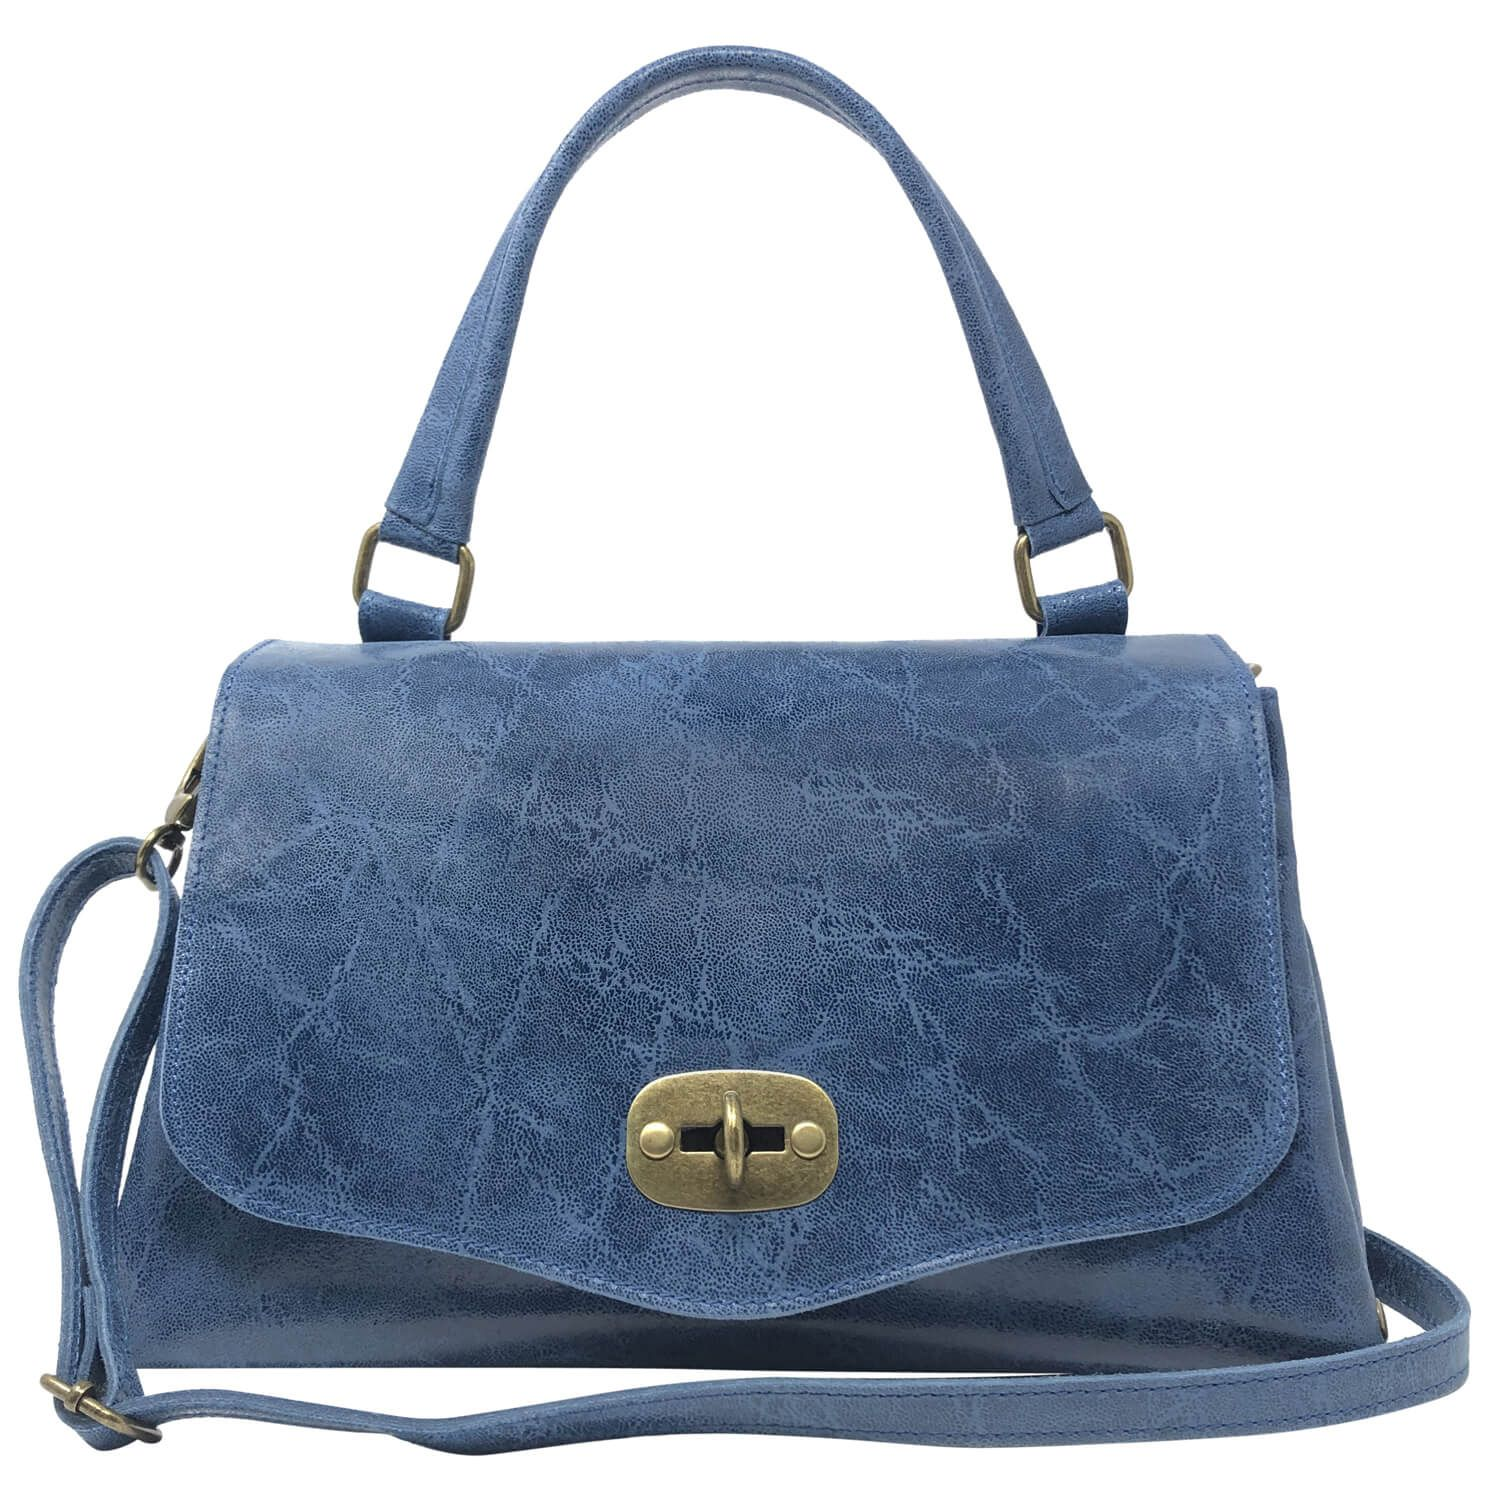 Photo of Parubi, Borsa Donna a Mano con Tracolla, In Vera Pelle, Made in Italy, Modello Zoe, Blu Laminato